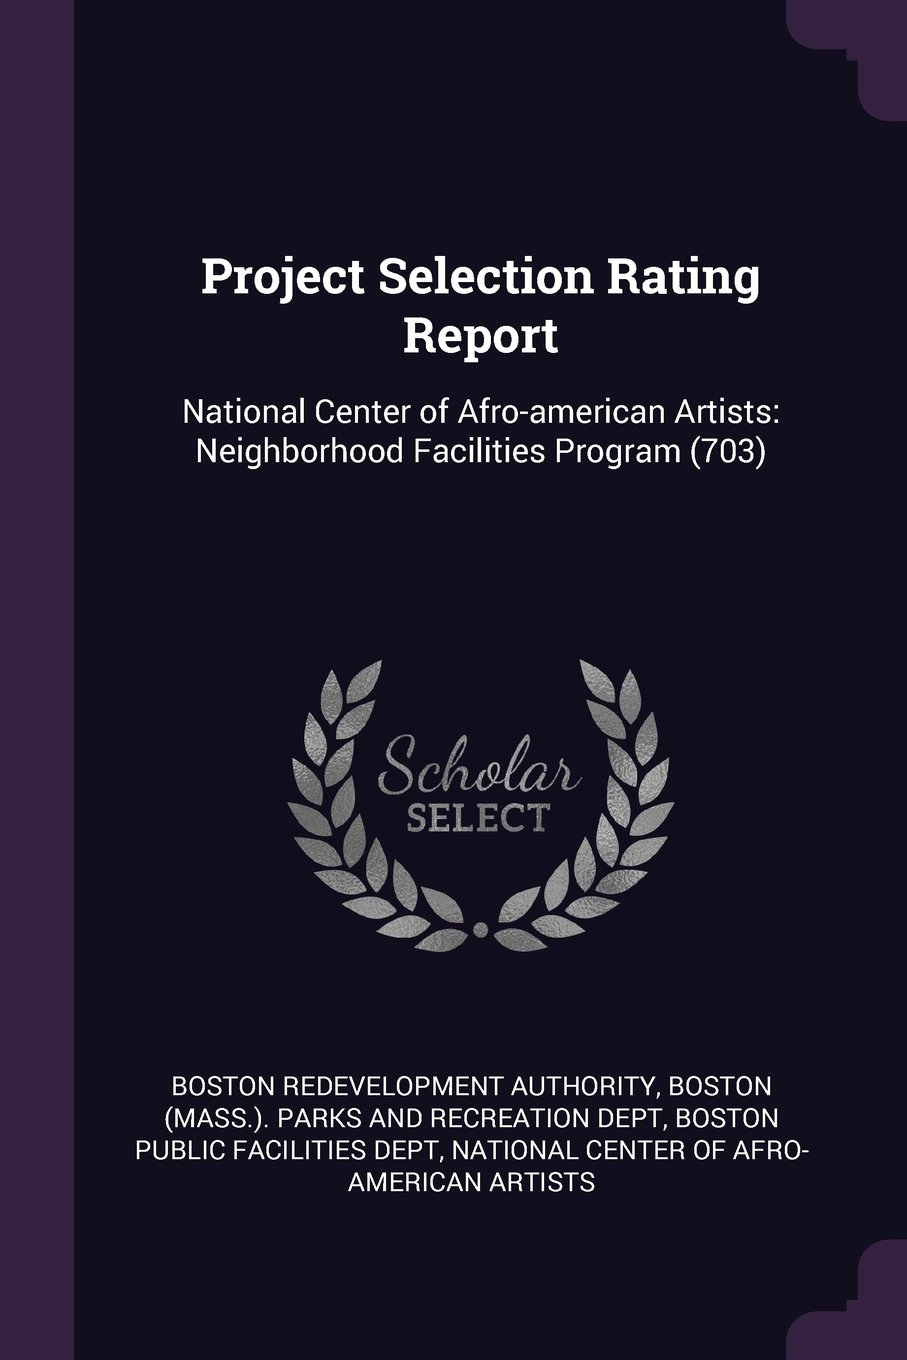 Project Selection Rating Report: National Center of Afro-American Artists: Neighborhood Facilities Program (703) PDF